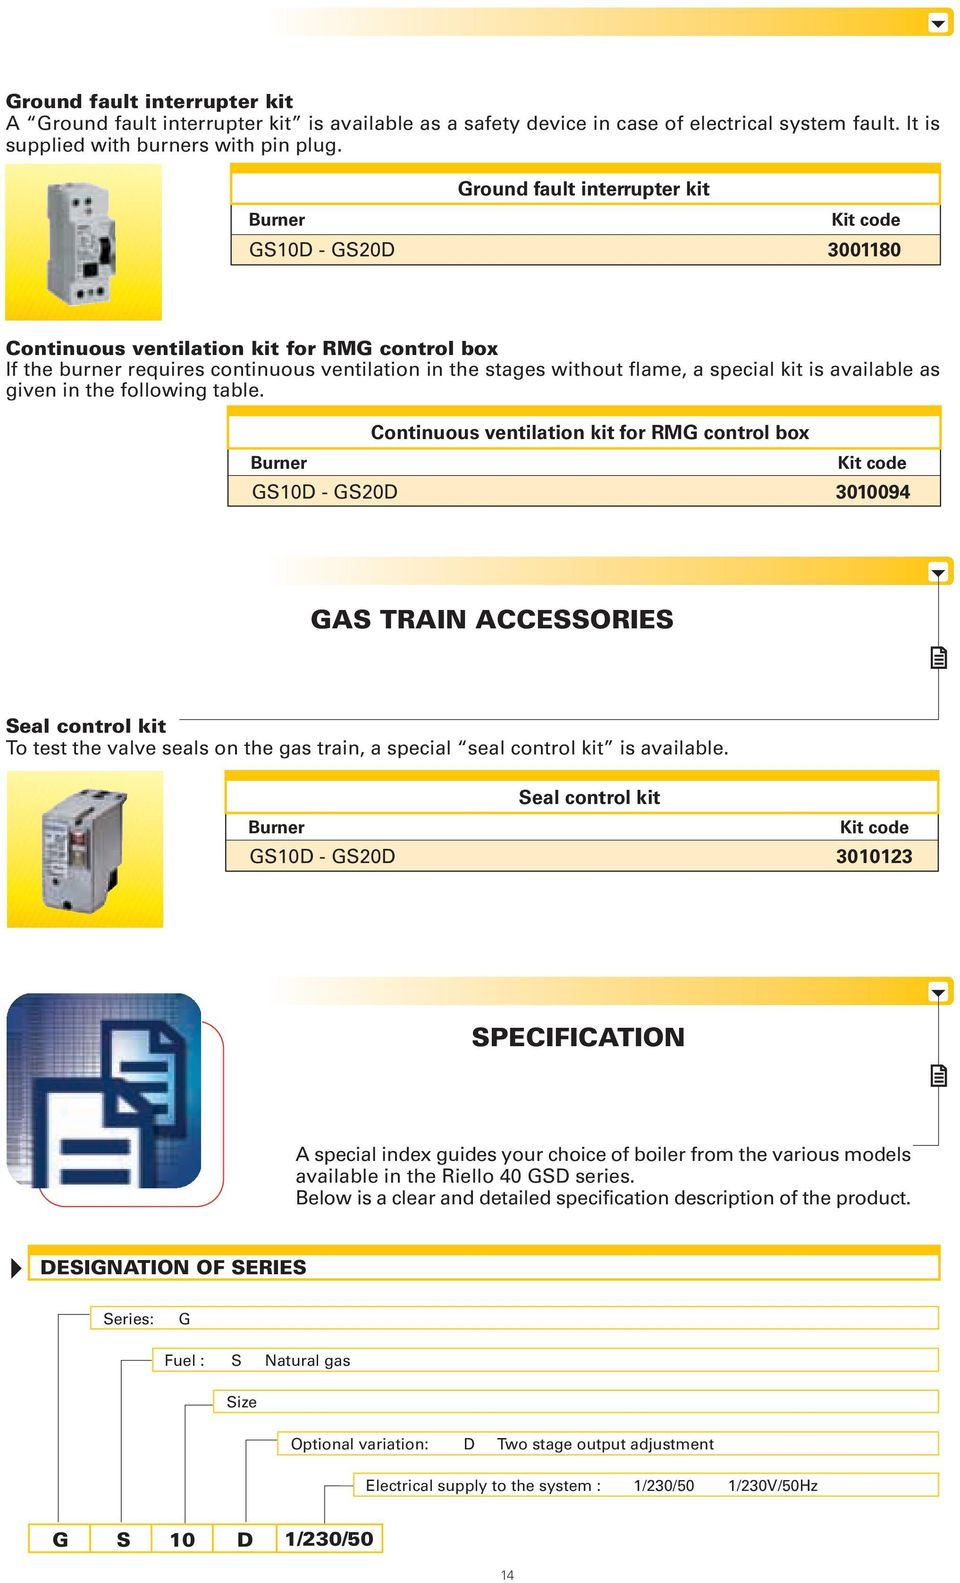 Riello 40 G 38 Manual Nissan Radio Wiring Harness Diagram Pn 2273 Array Two Stage Gas Burners Gsd Series Gs10d 29 Kw Gs20d 58